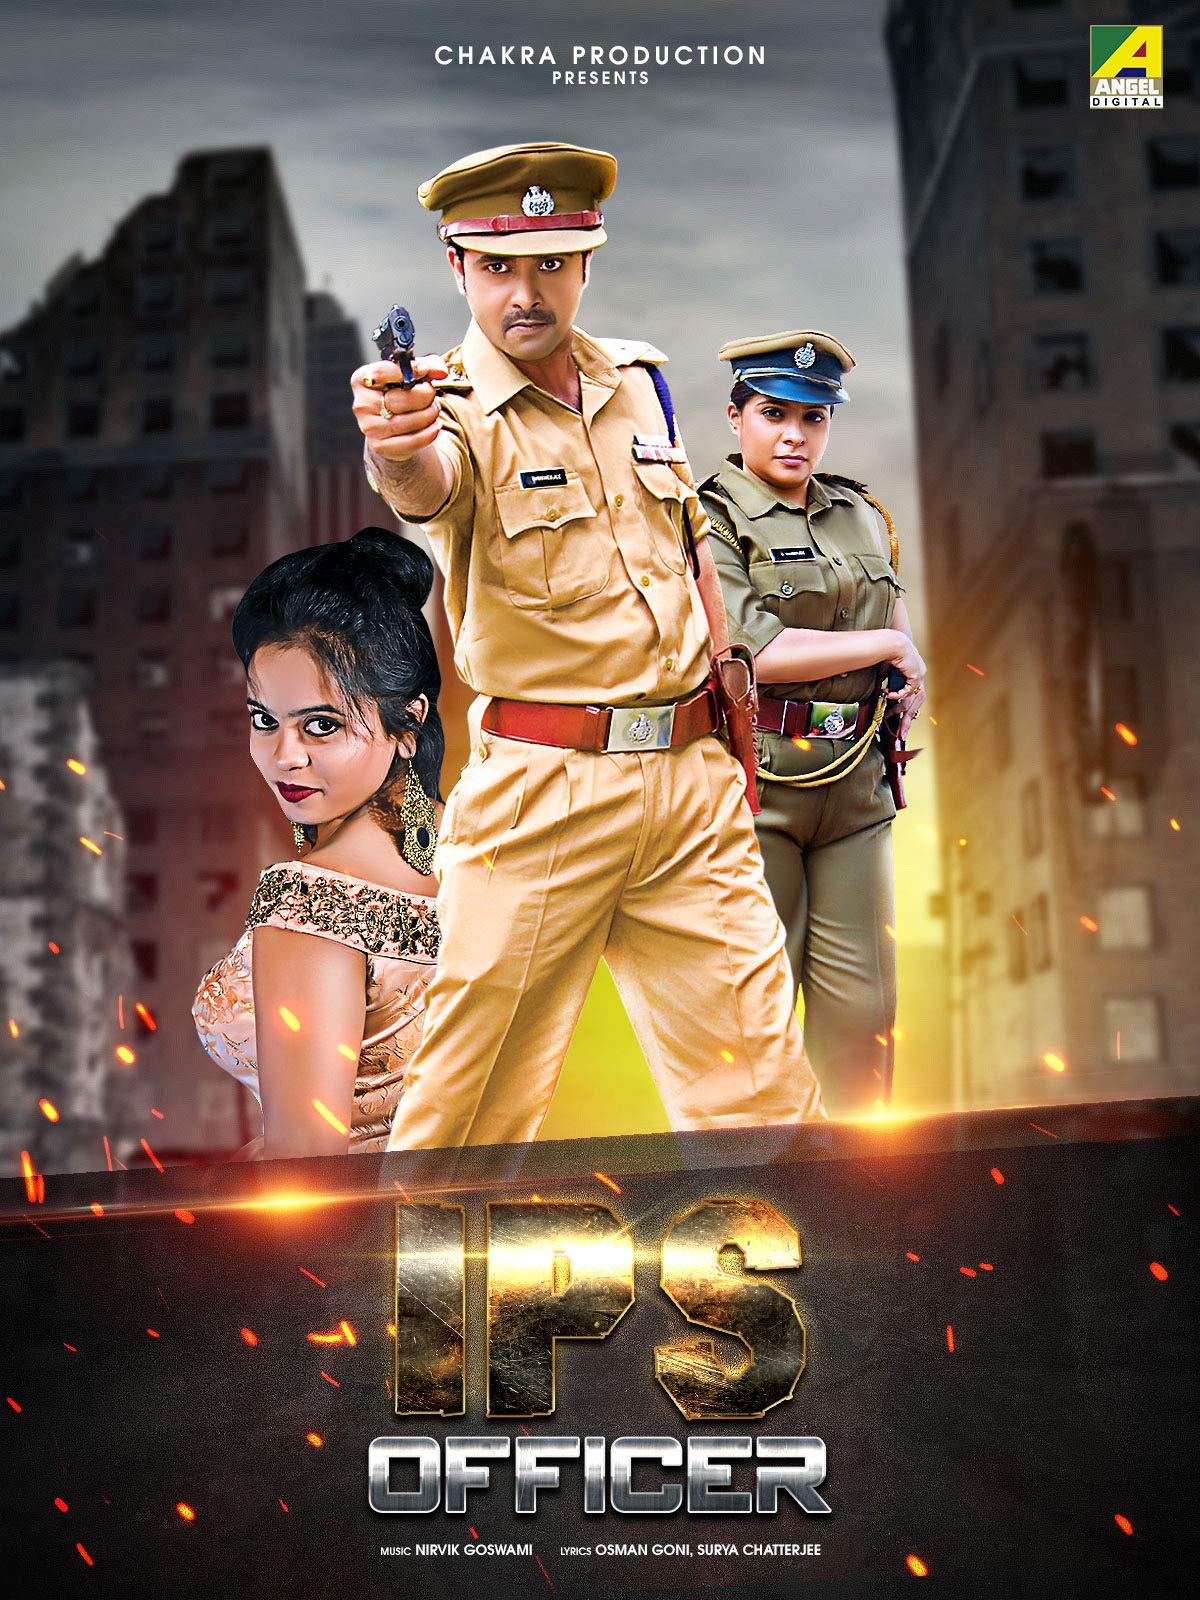 Ips Officer (2020) Bengali Movie 480p HDRip ESubs 350MB MKV